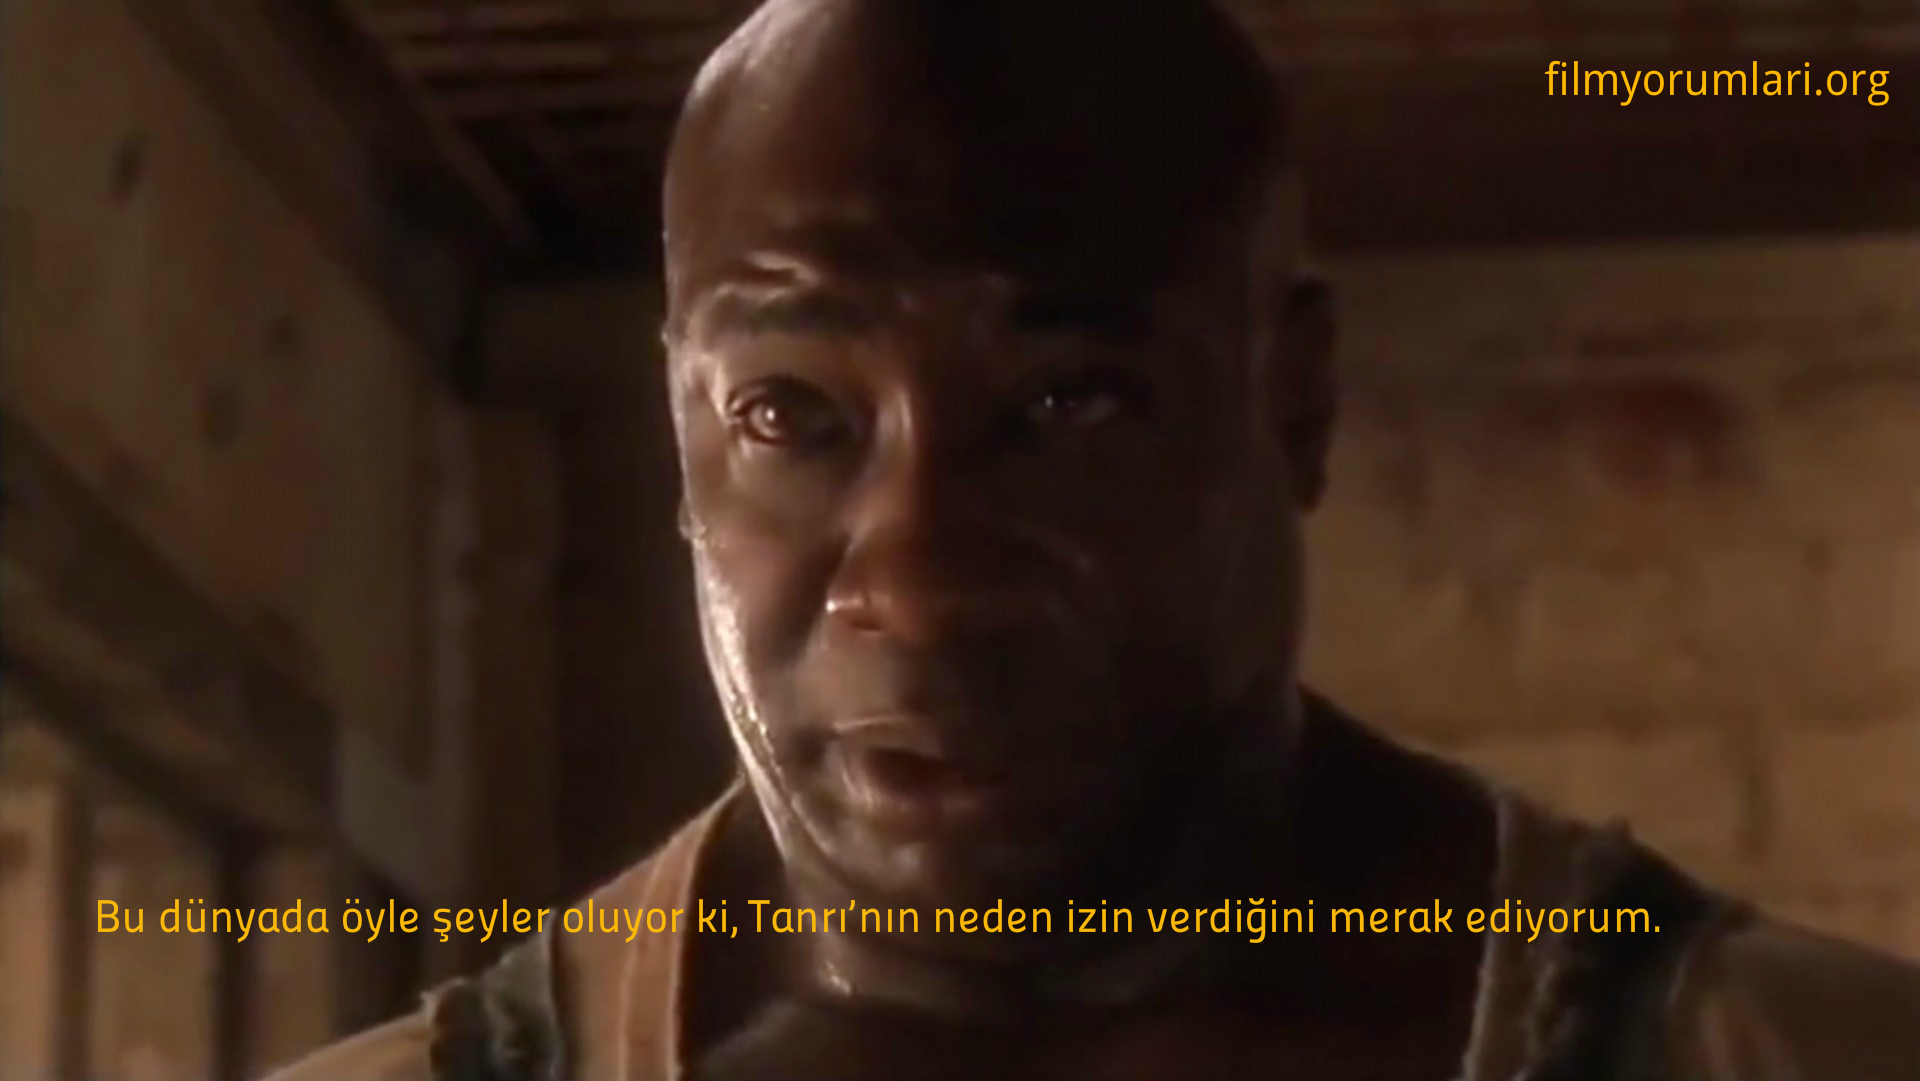 michael-clarke-duncan-as-john-coffey-in-the